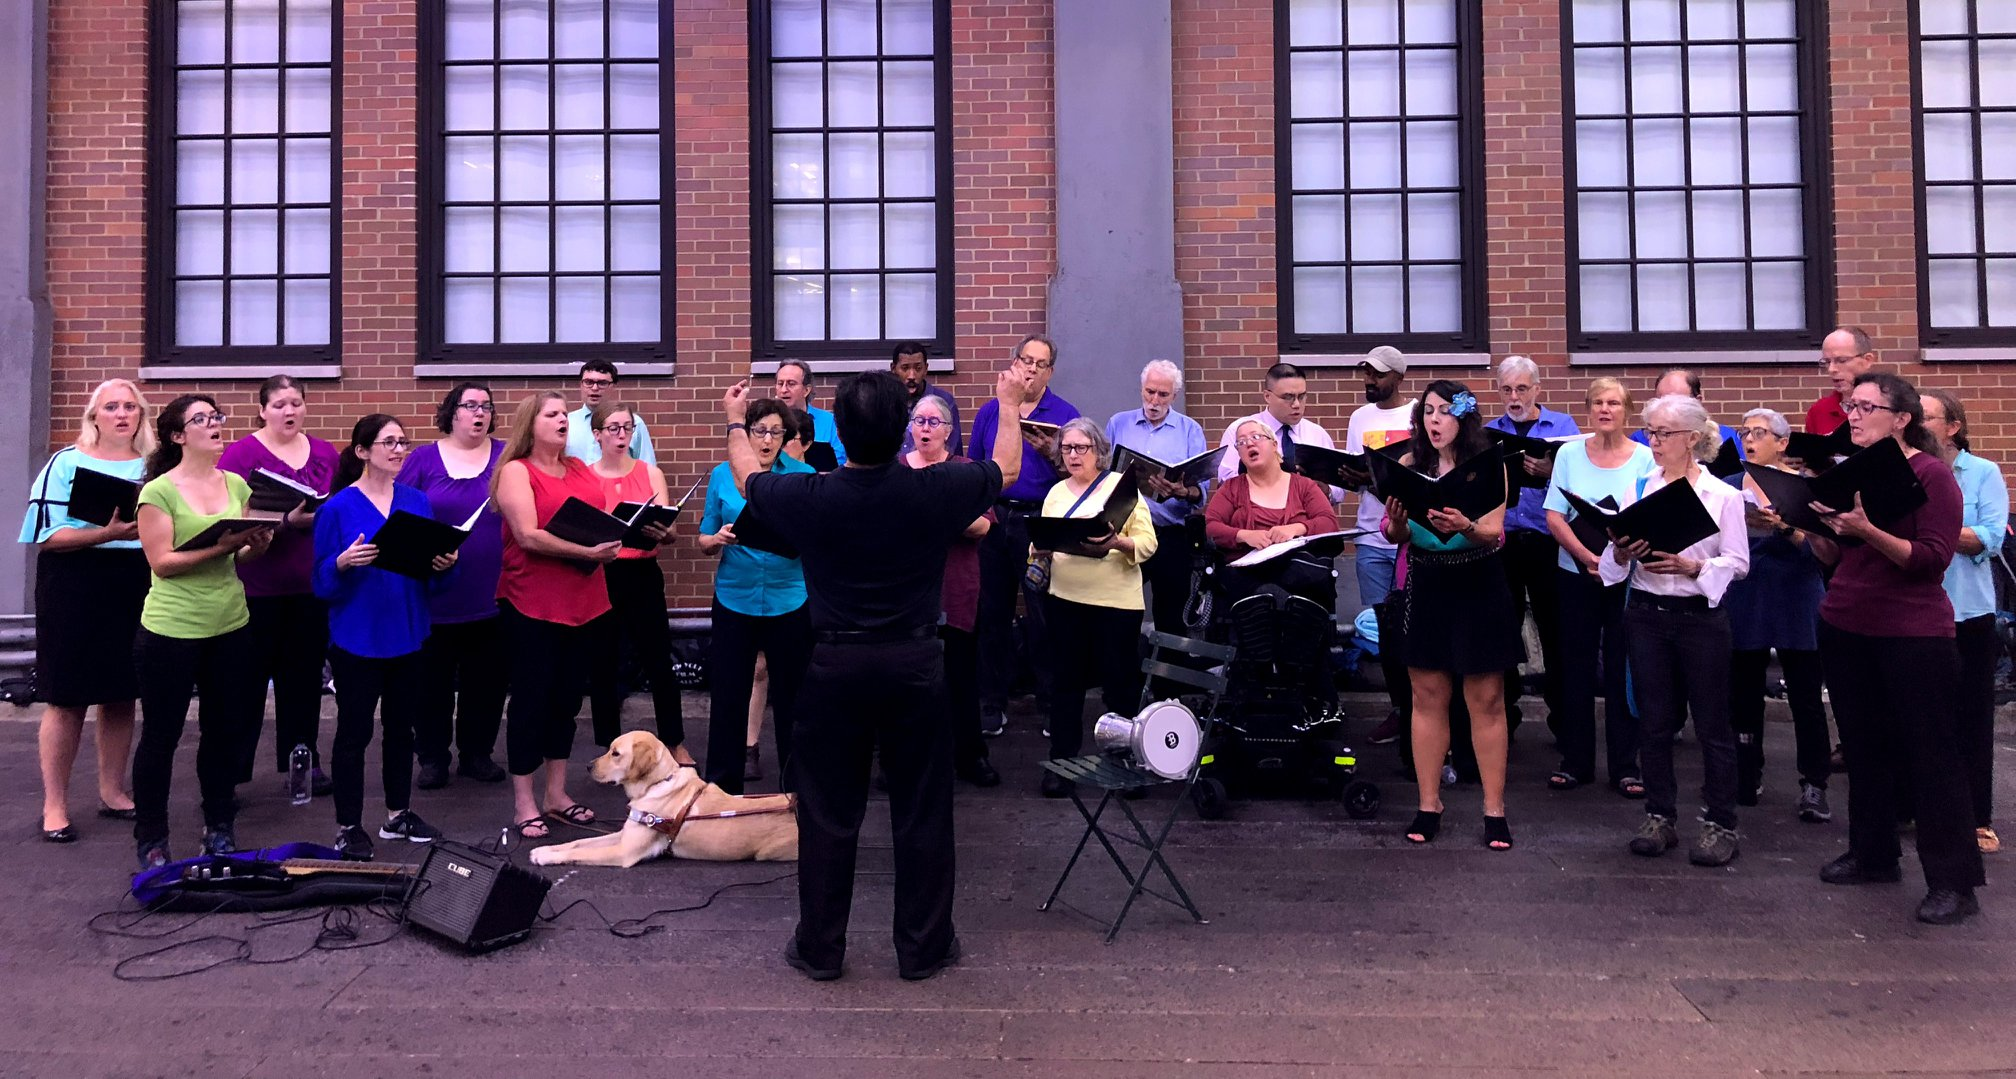 Each year, on or near the anniversary of the September 11th attack on the World Trade Center, the choir performs a public concert. On September 12, 2018 we performed on the High Line in New York City.